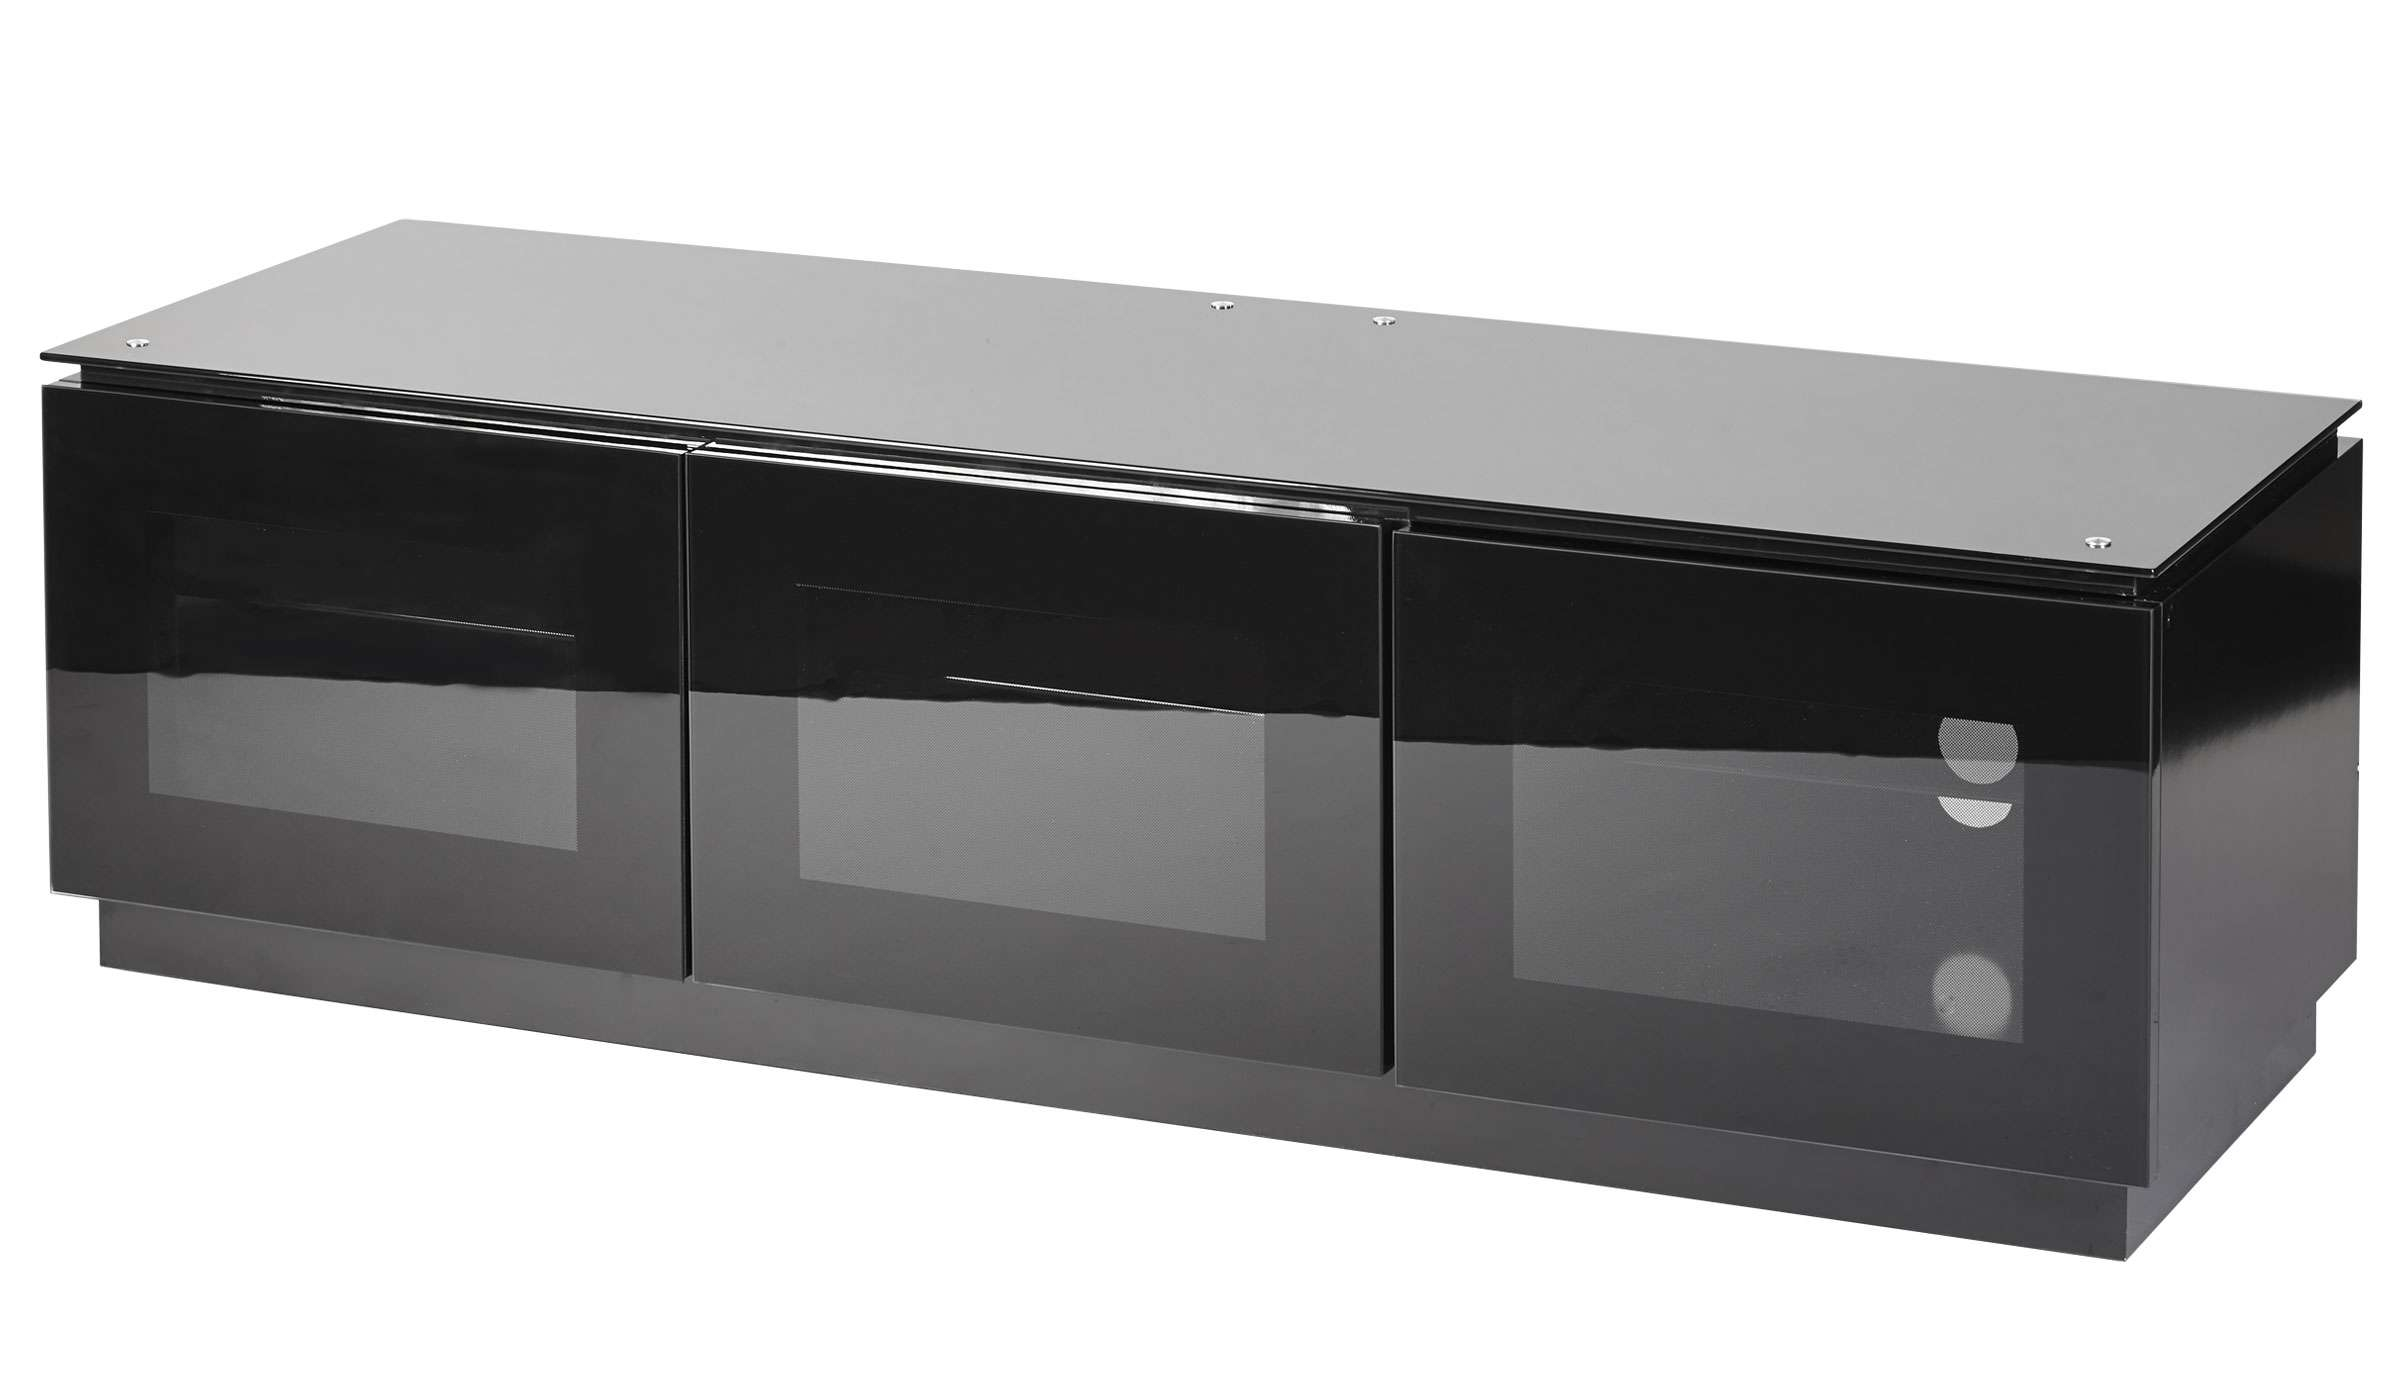 Black Tv Stand With Glass Doors Choice Image – Doors Design Ideas In Black Tv Stands With Glass Doors (View 2 of 15)